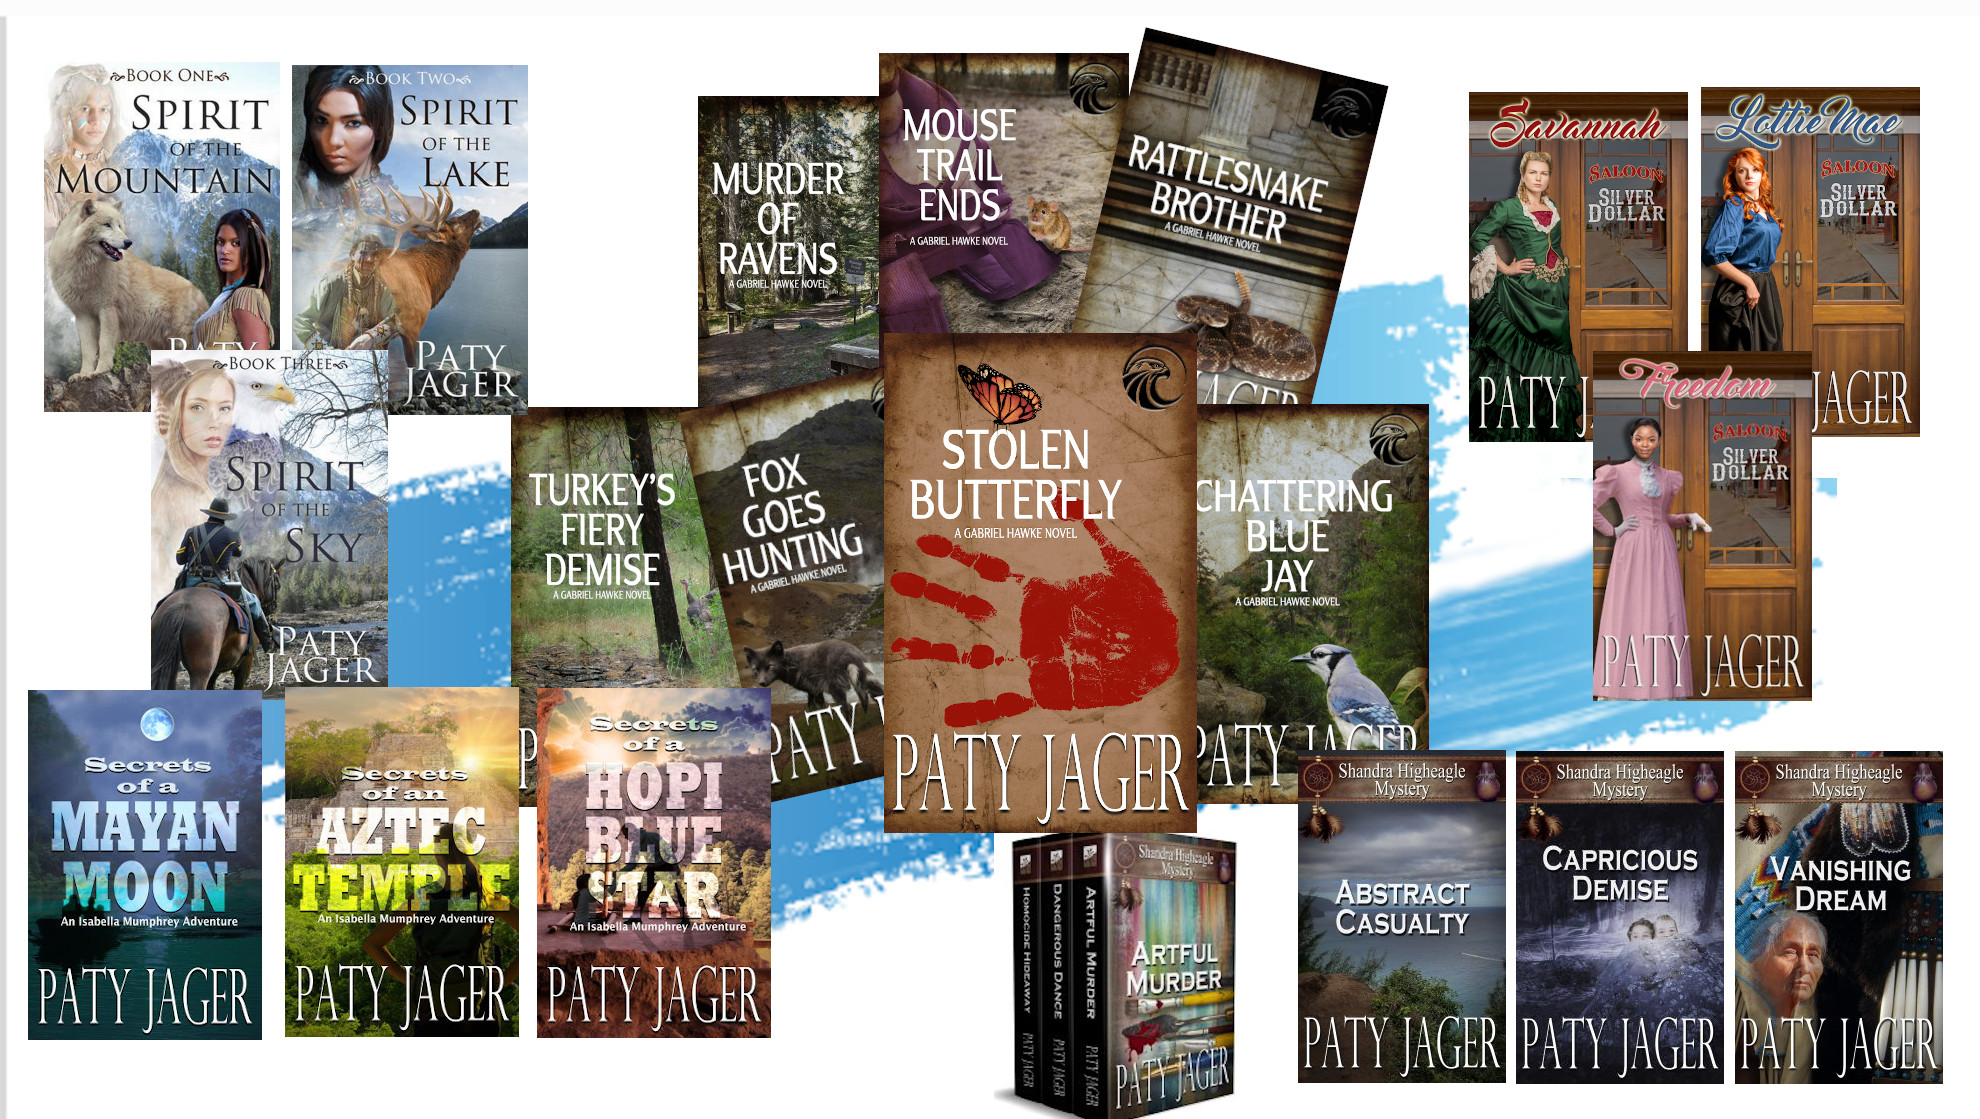 A collage of some of the books written by Paty Jager, award winning author with 50+ titles.